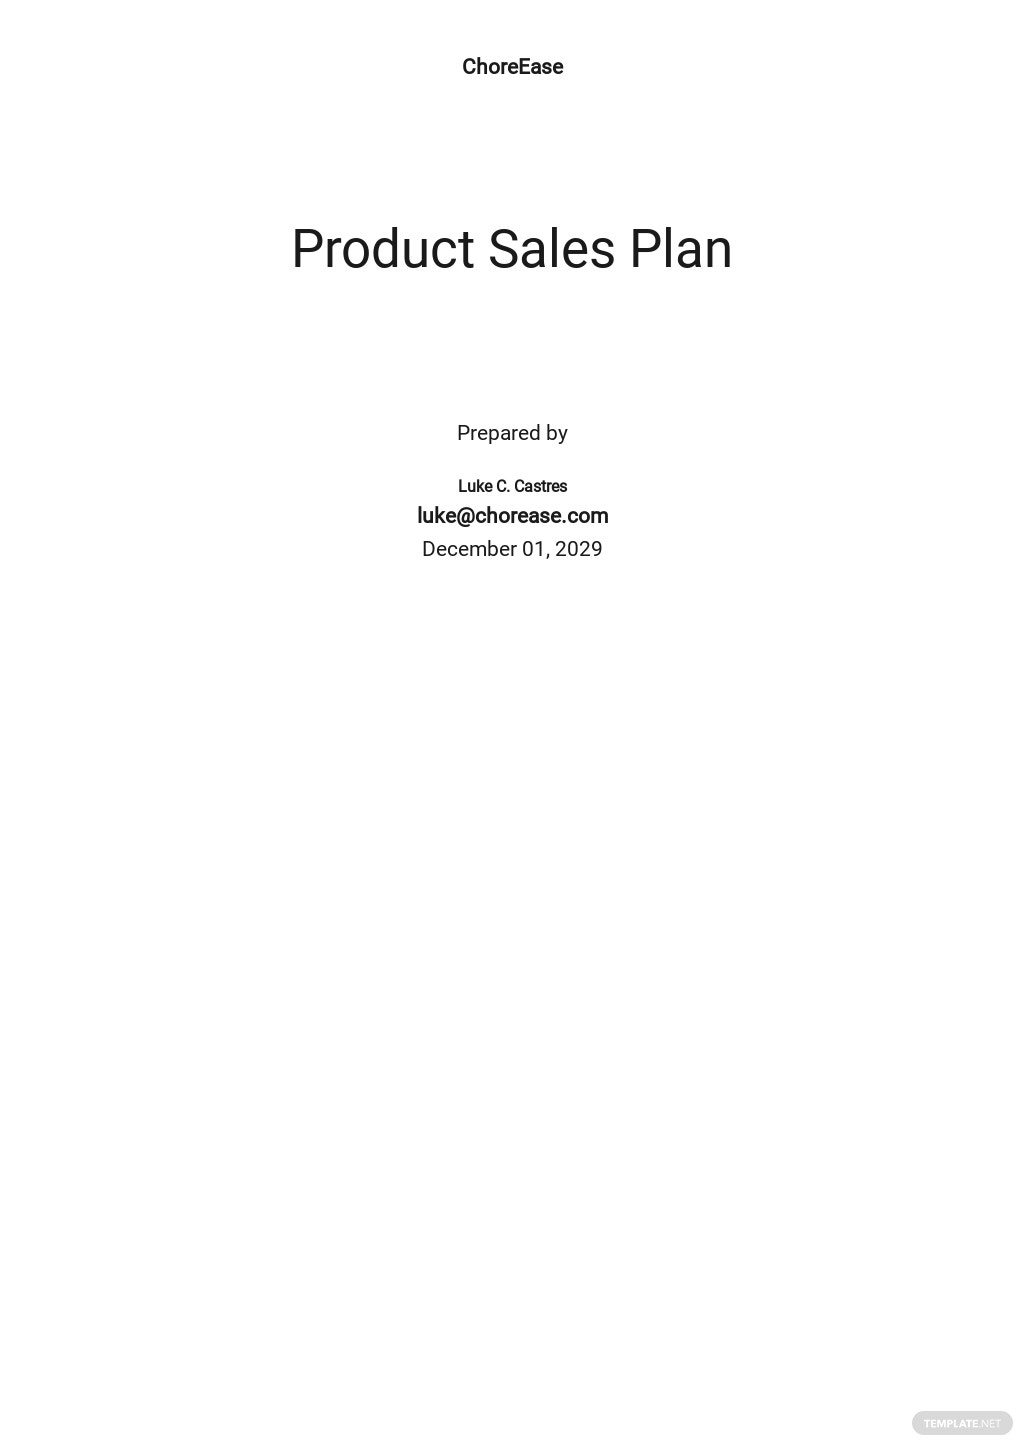 Product Sales Plan Template